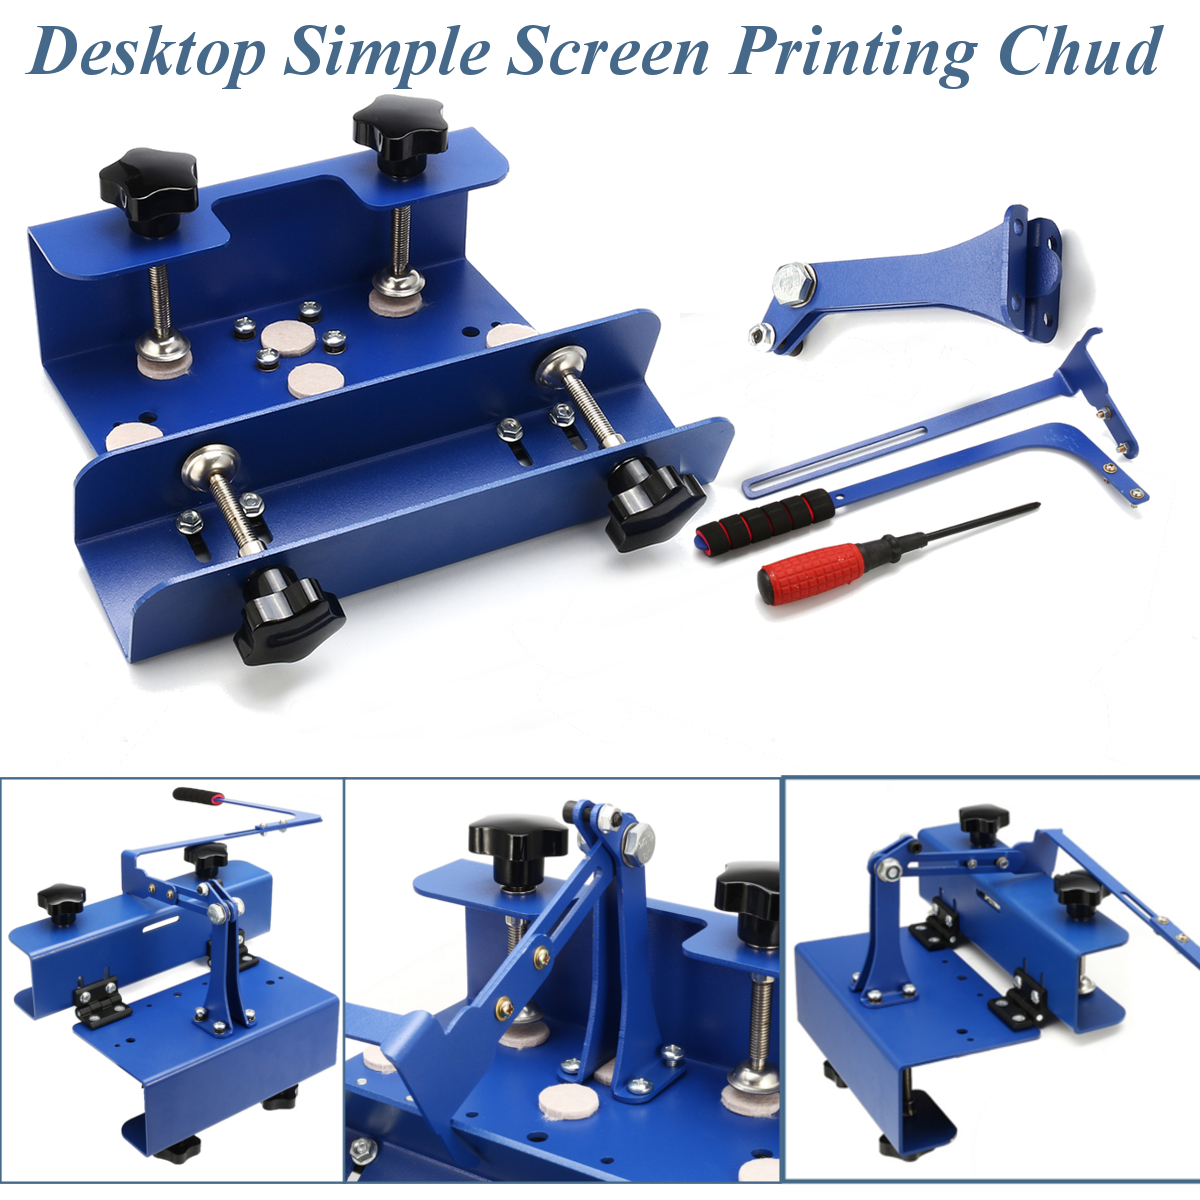 Desktop Simple Silk Screen Printing Chuck T-shirt Printer Head DIY Tool